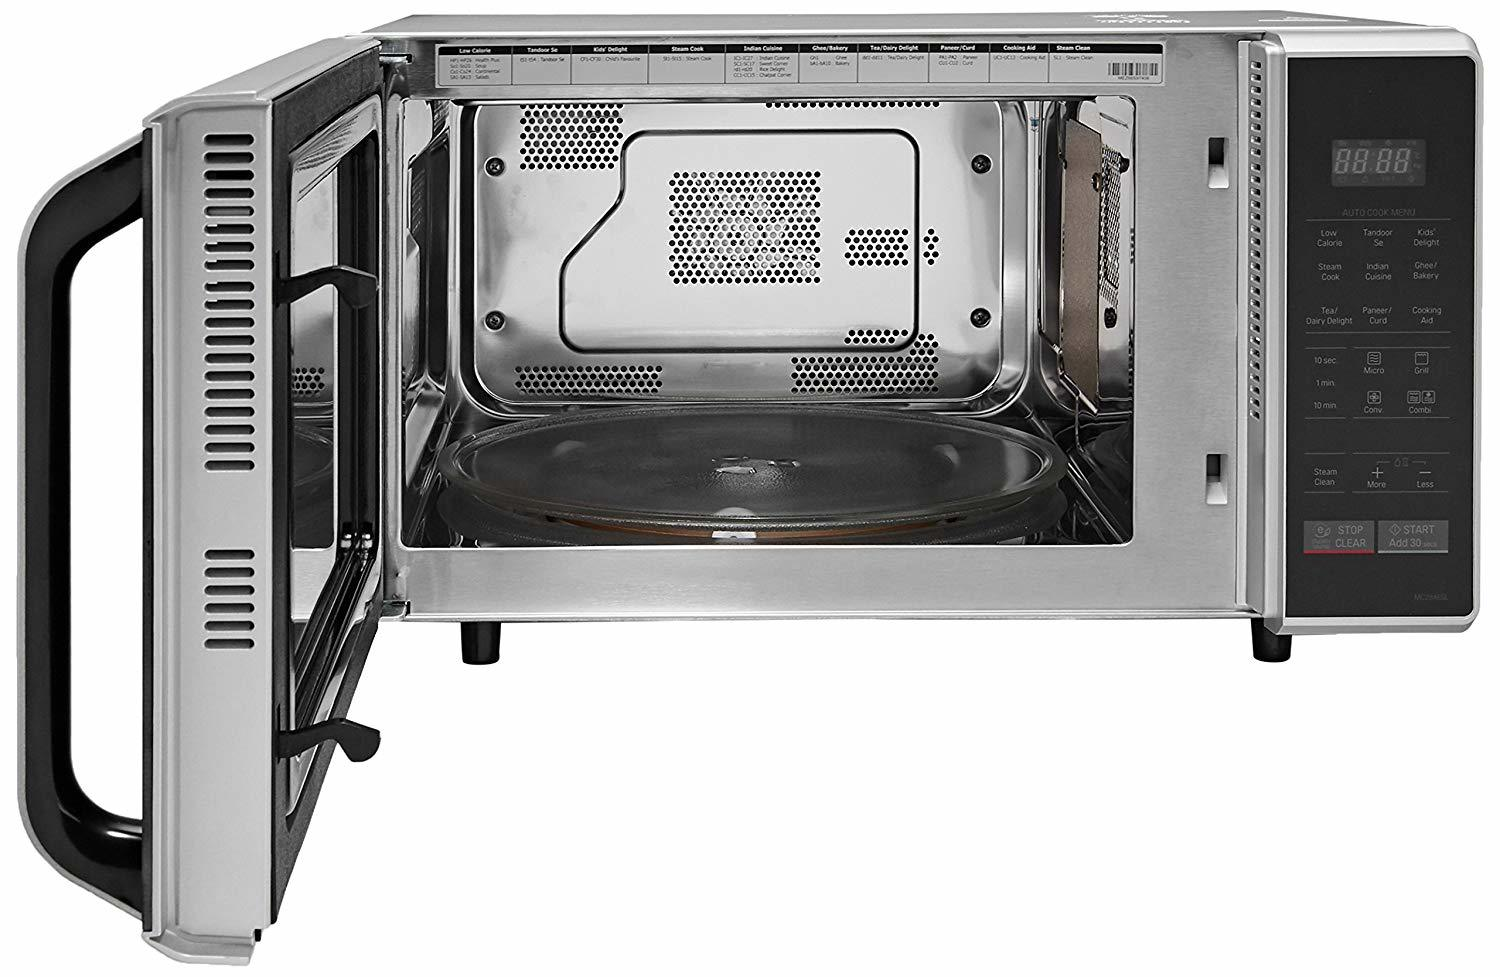 LG 28 L Convection Microwave Oven (MC2846SL, Silver)